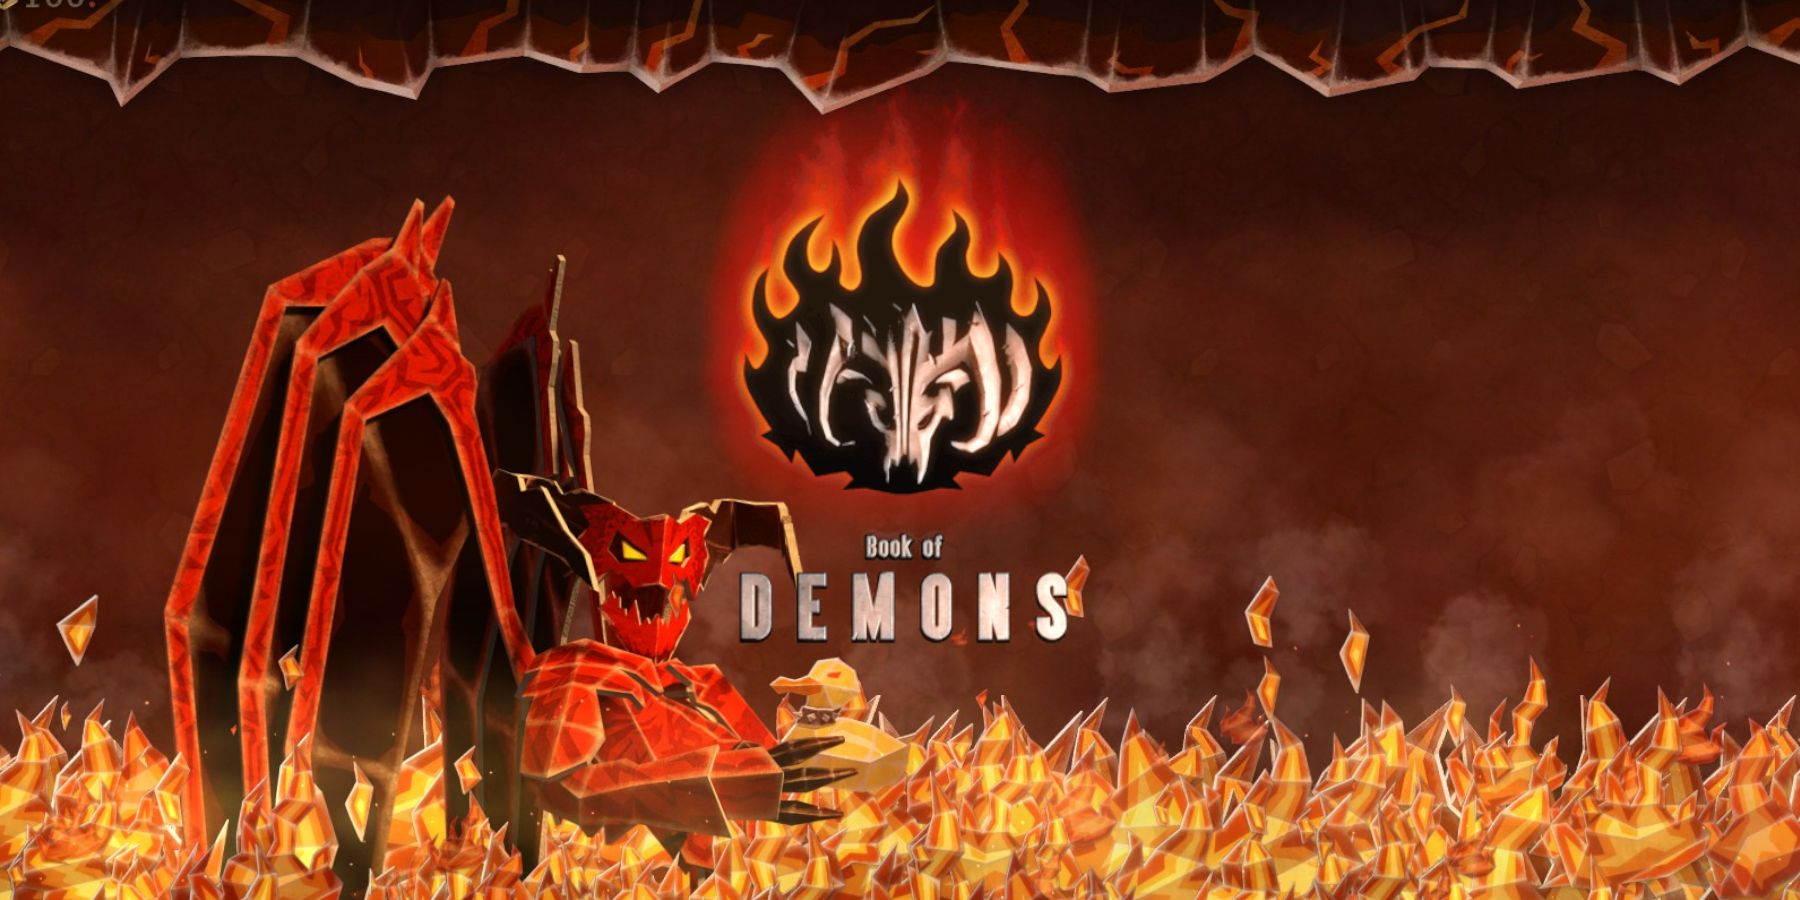 Book of Demons Review: A Somewhat Shallow Diablo Clicker